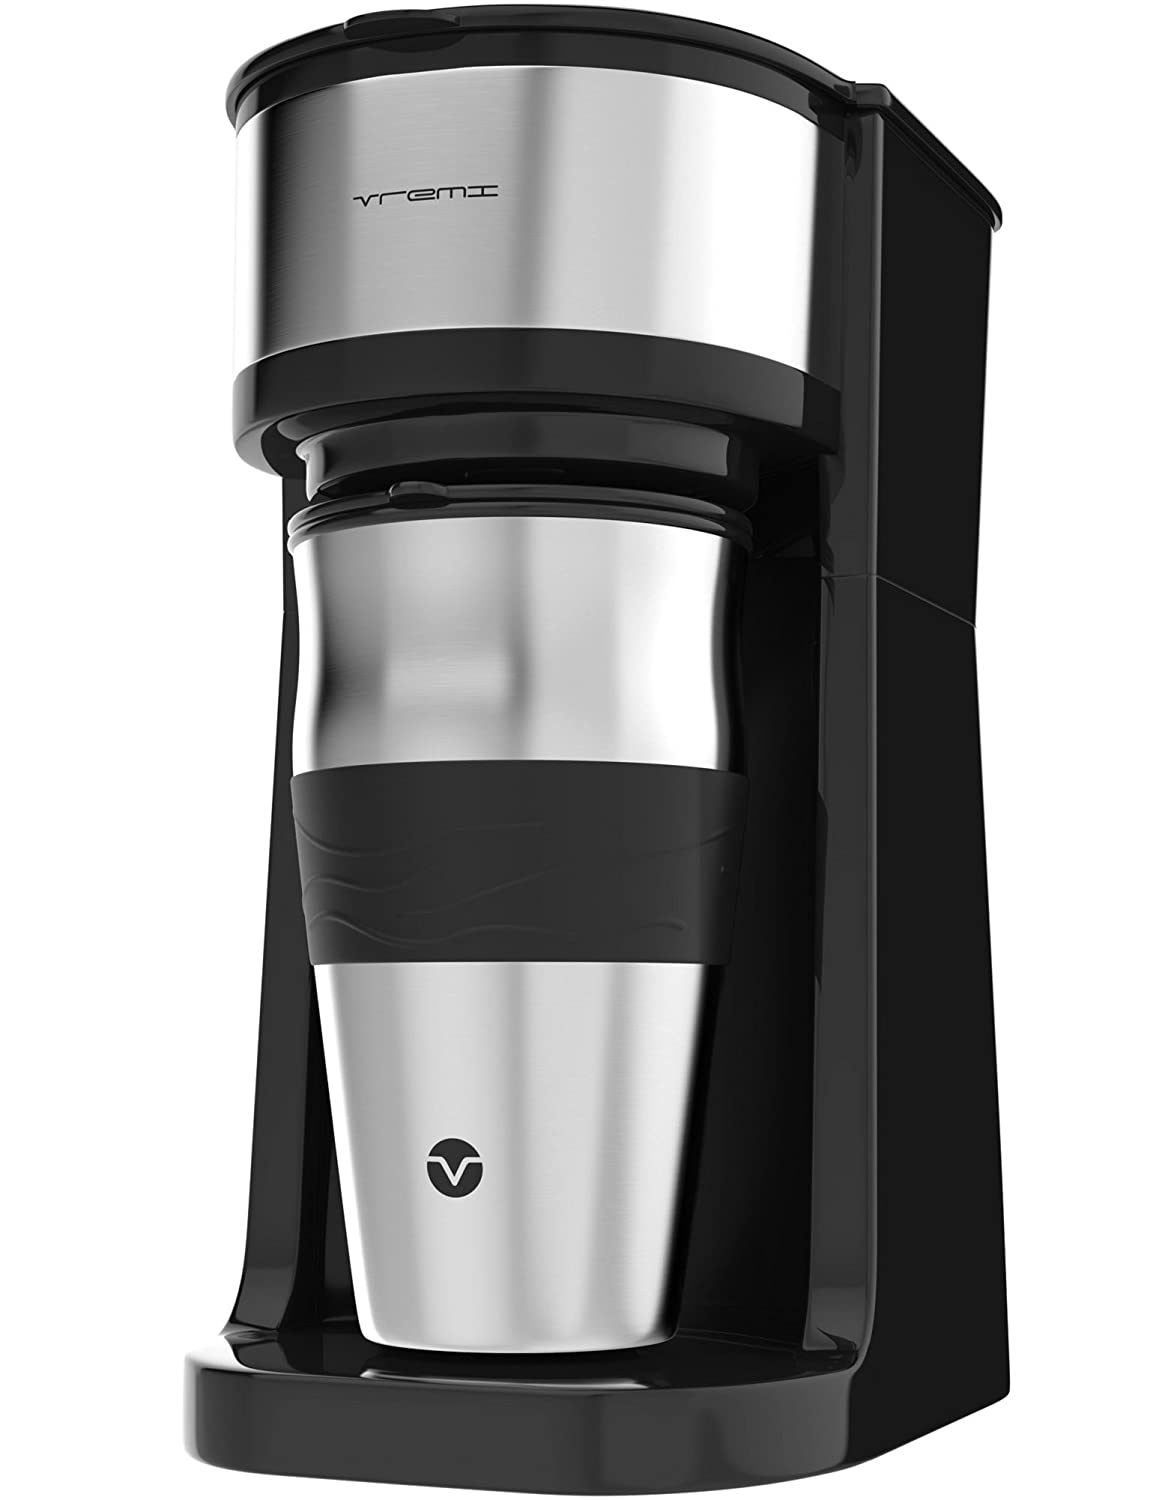 Best Single Cup Coffee Maker Reviews 2019: Top 5+ Recommended 5 #cookymom